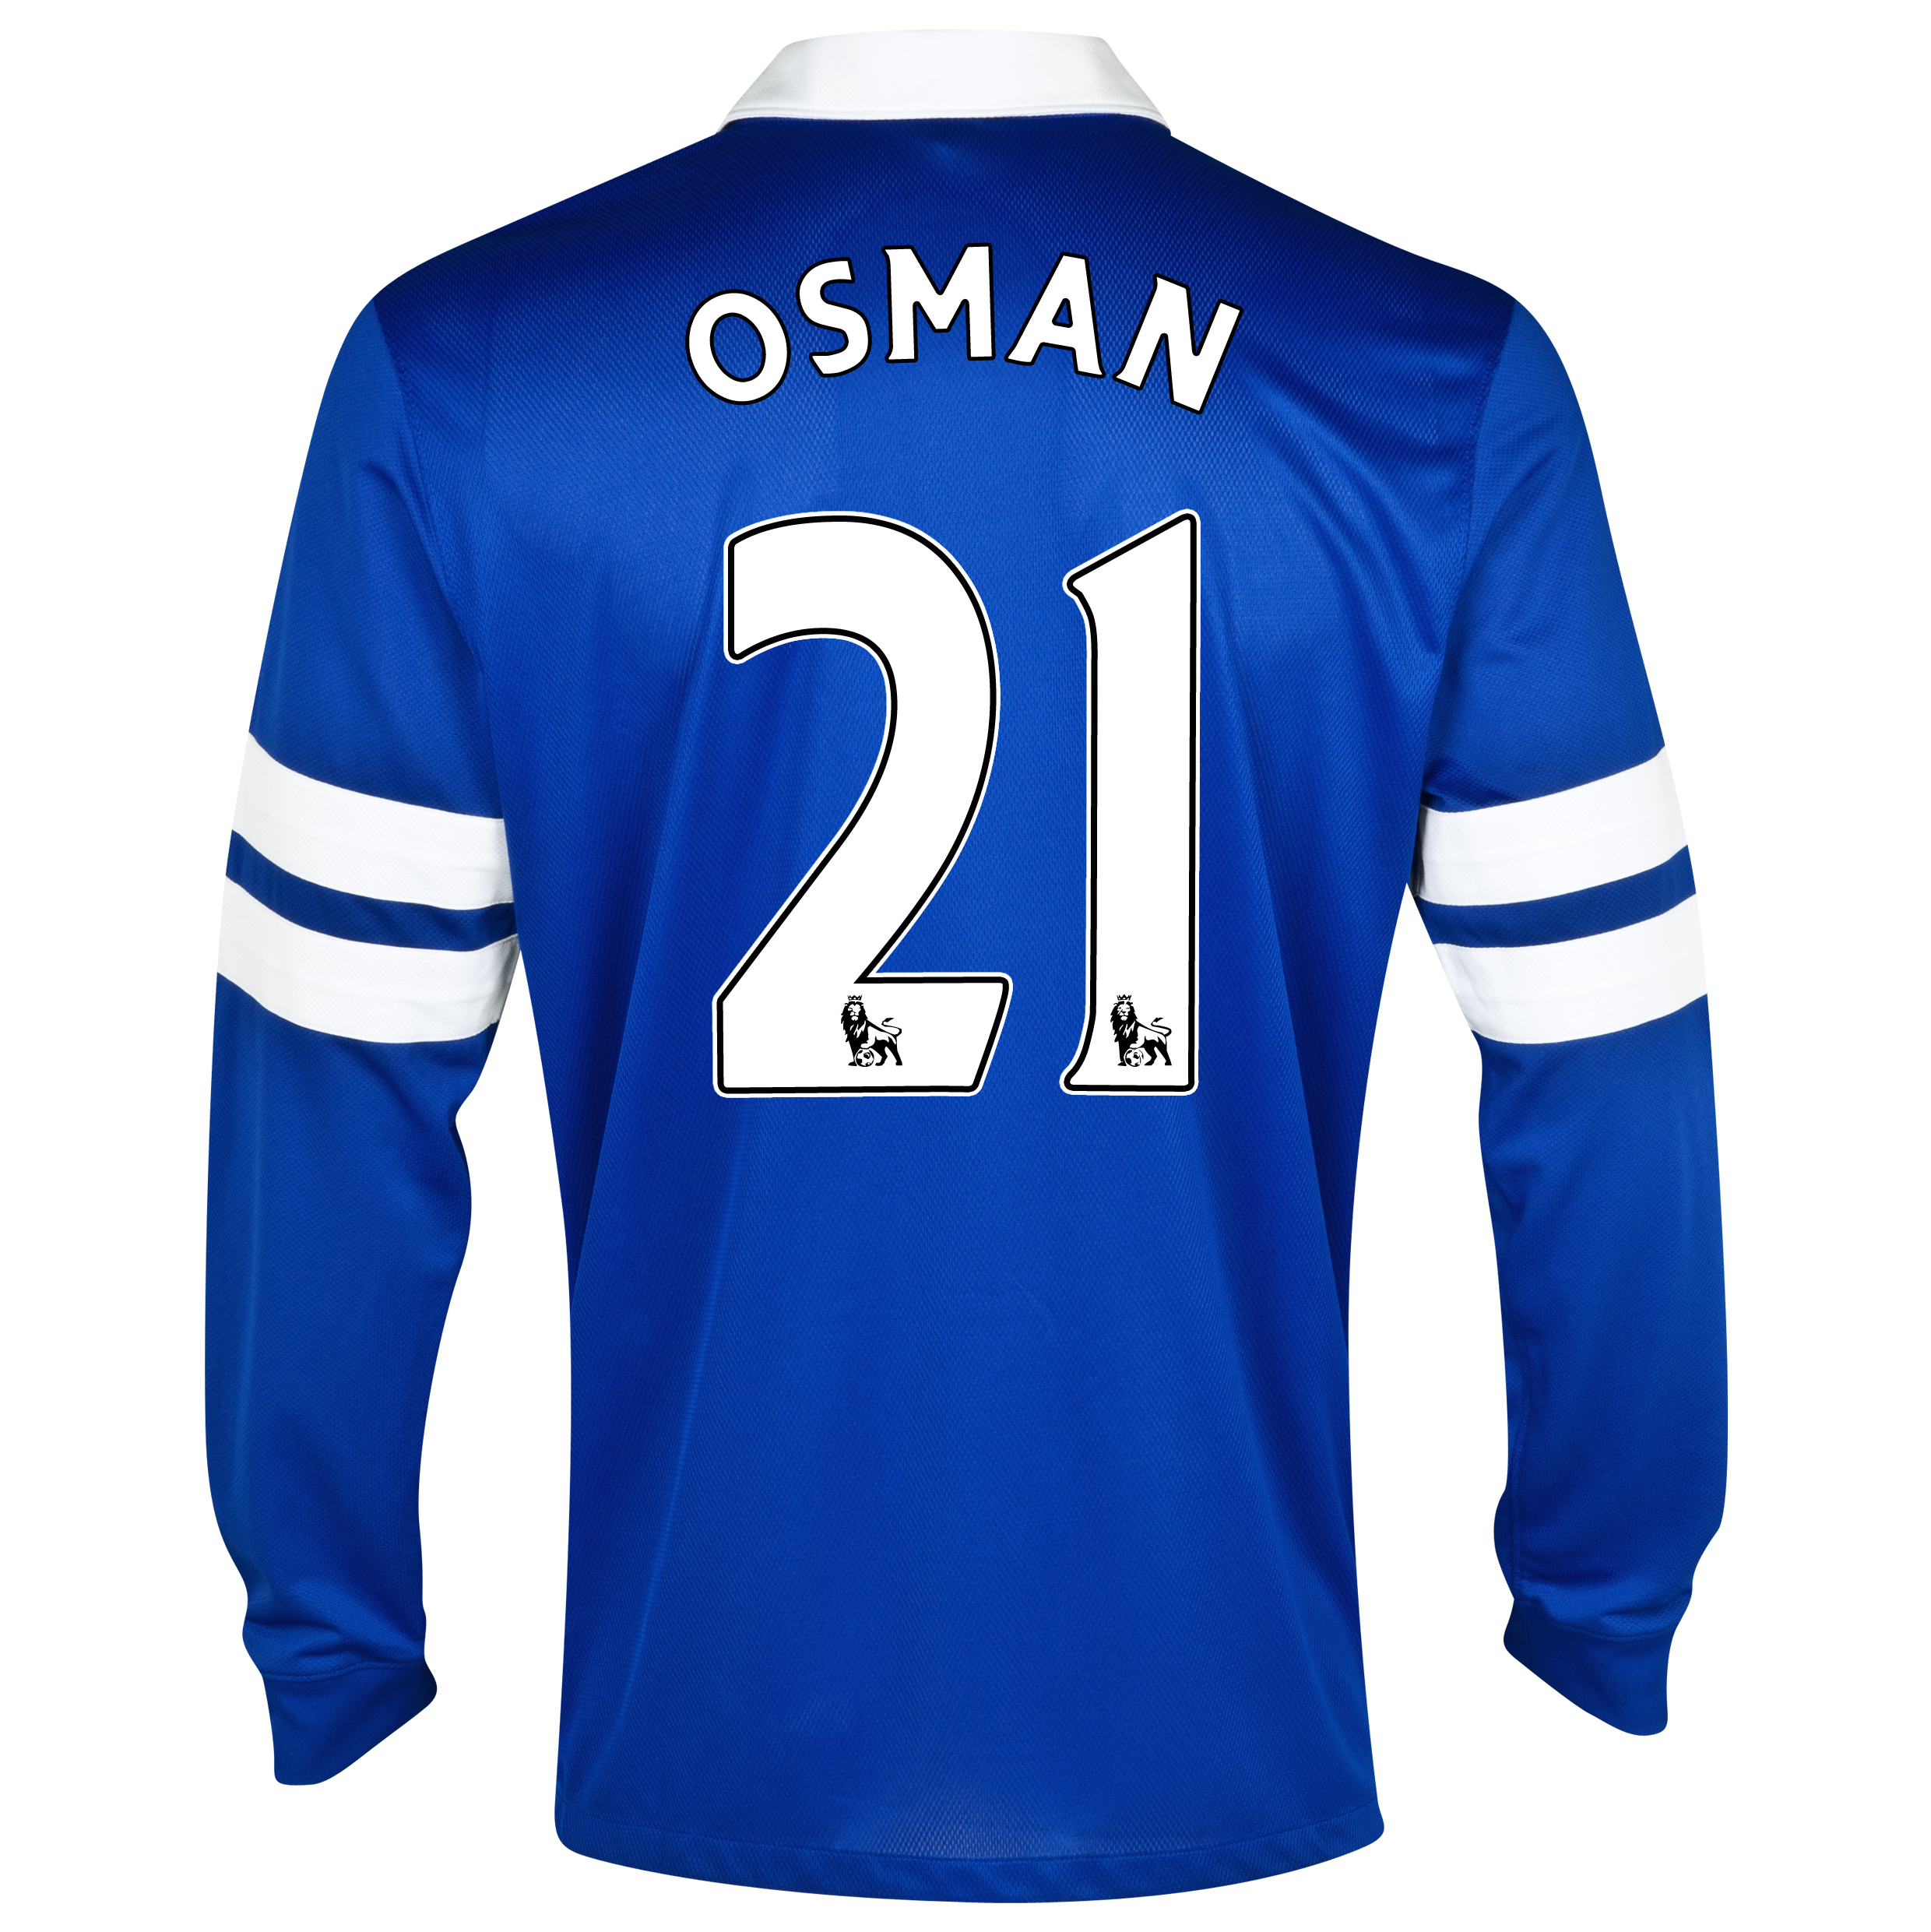 Everton Home Shirt 2013/14 - Long Sleeved Blue with Osman 21 printing